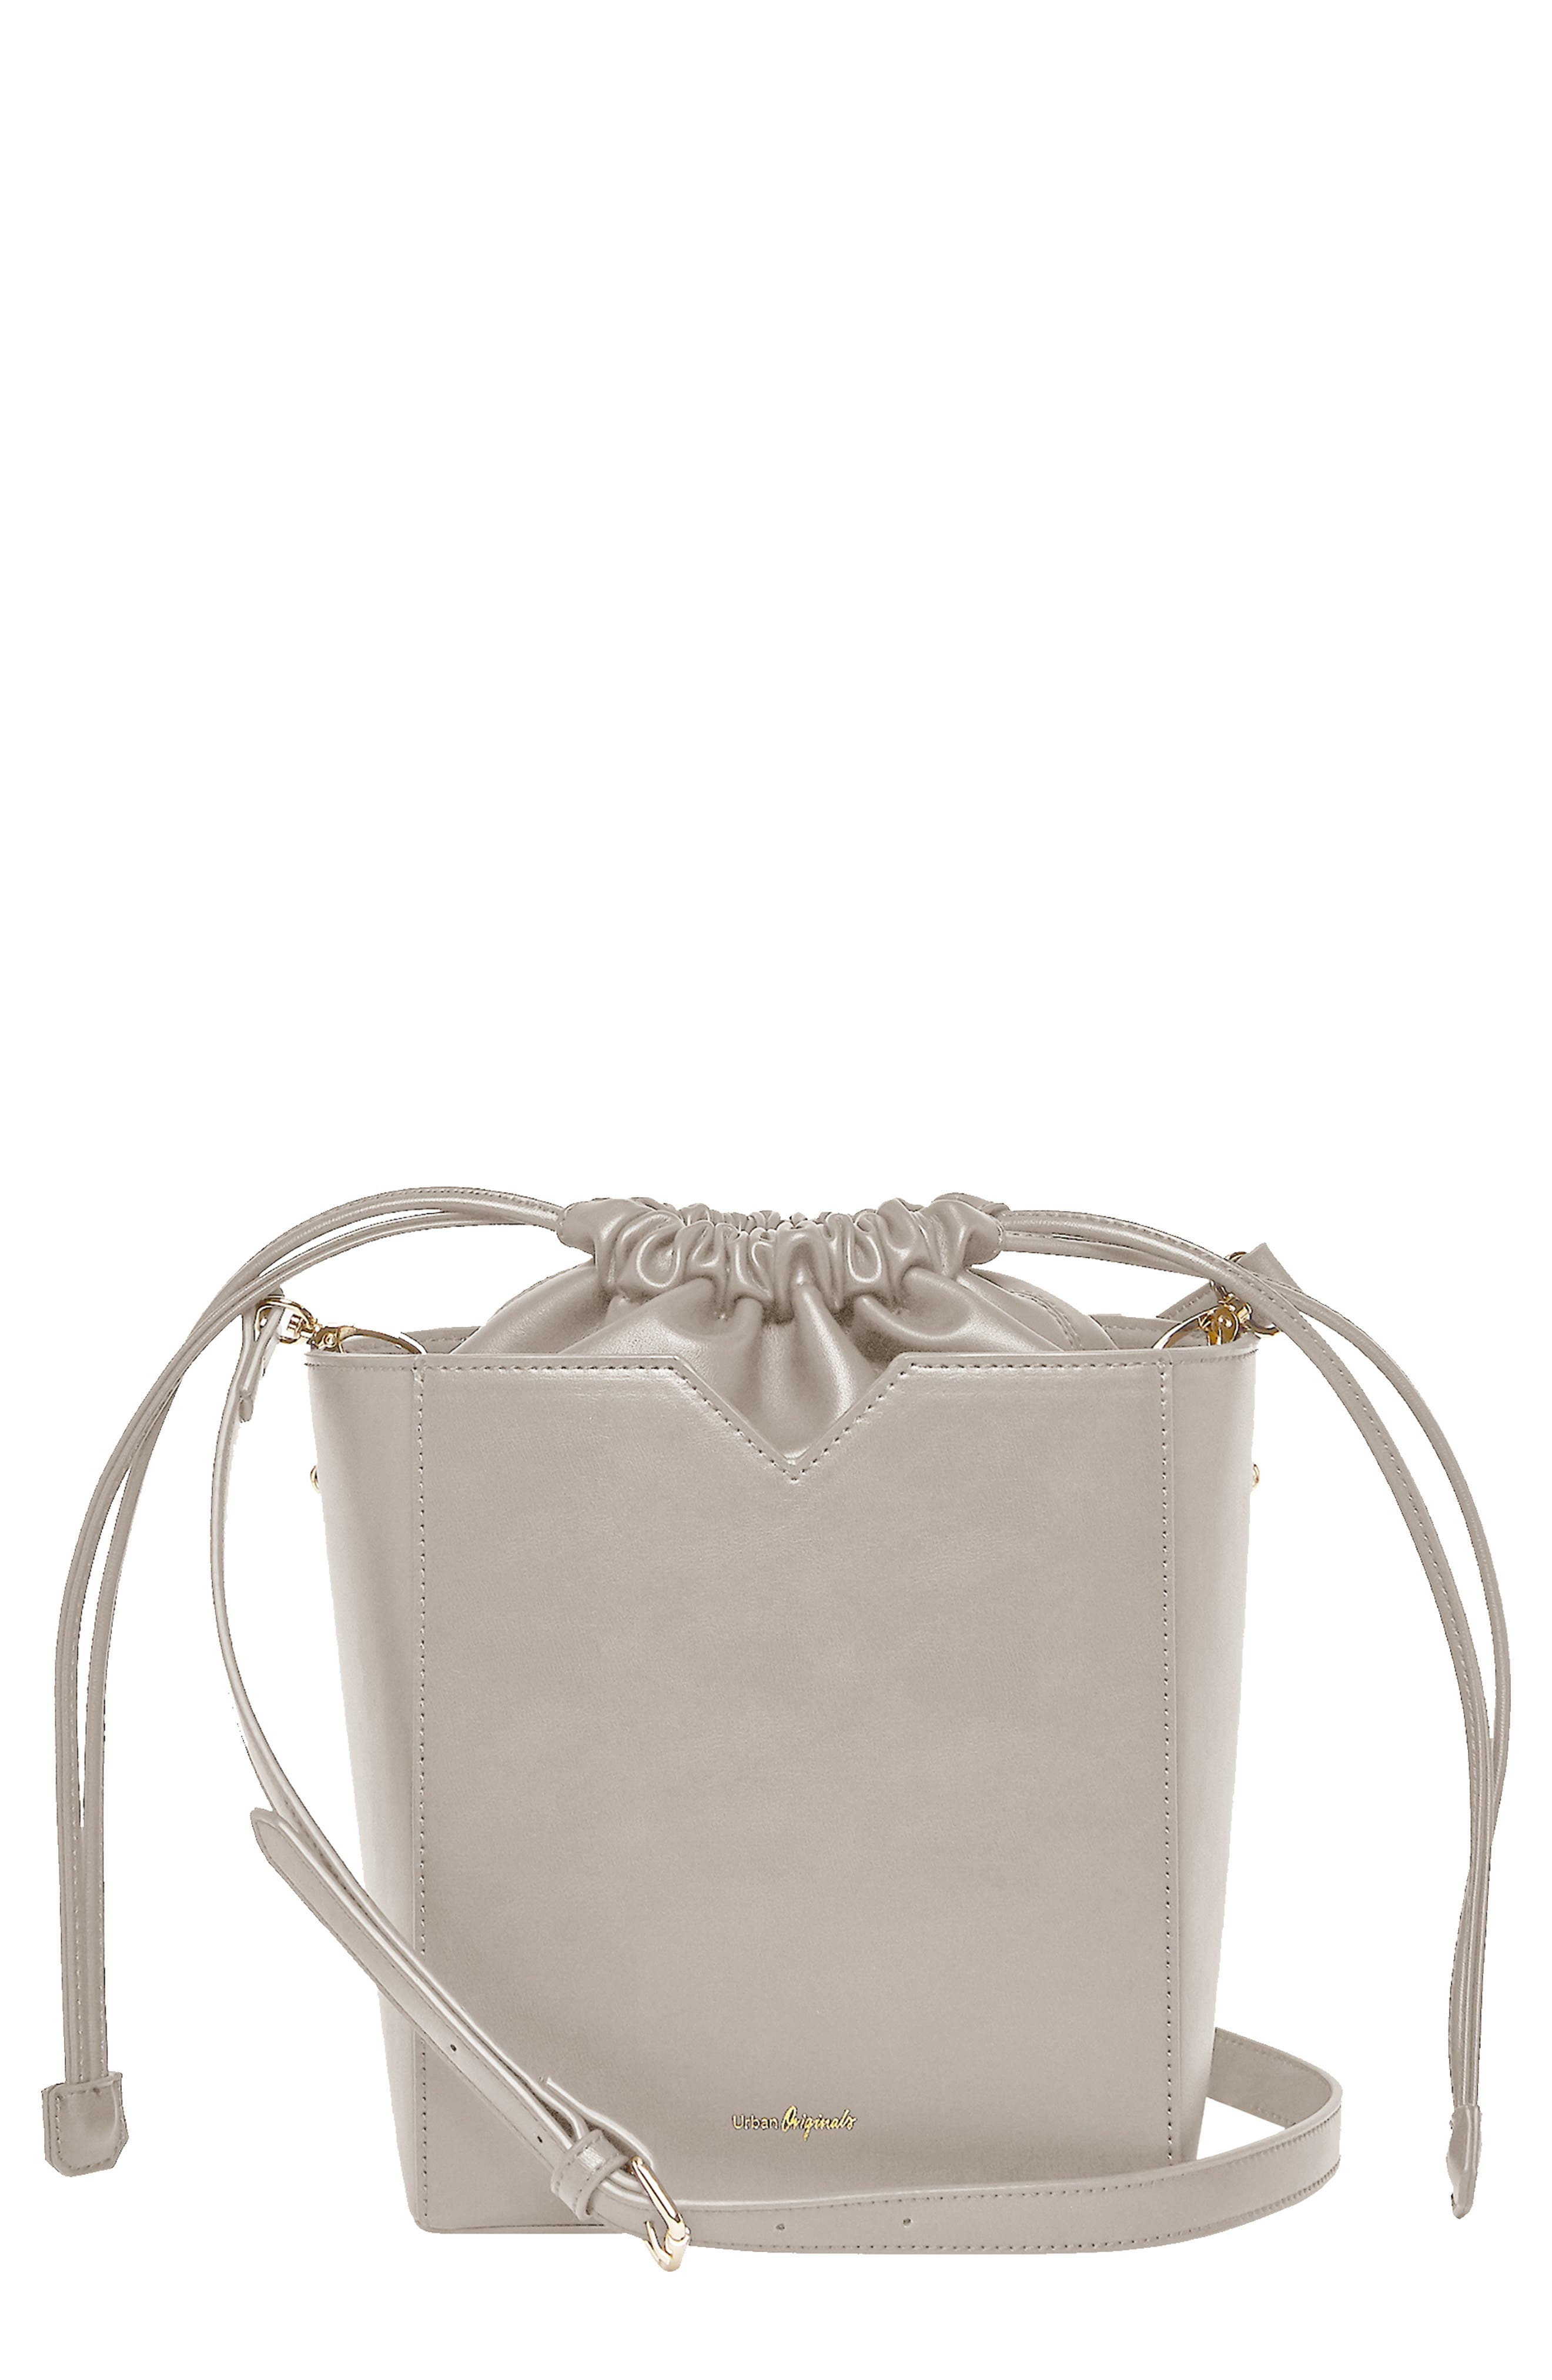 Be Yourself Vegan Leather Bucket Bag,                         Main,                         color, GREY